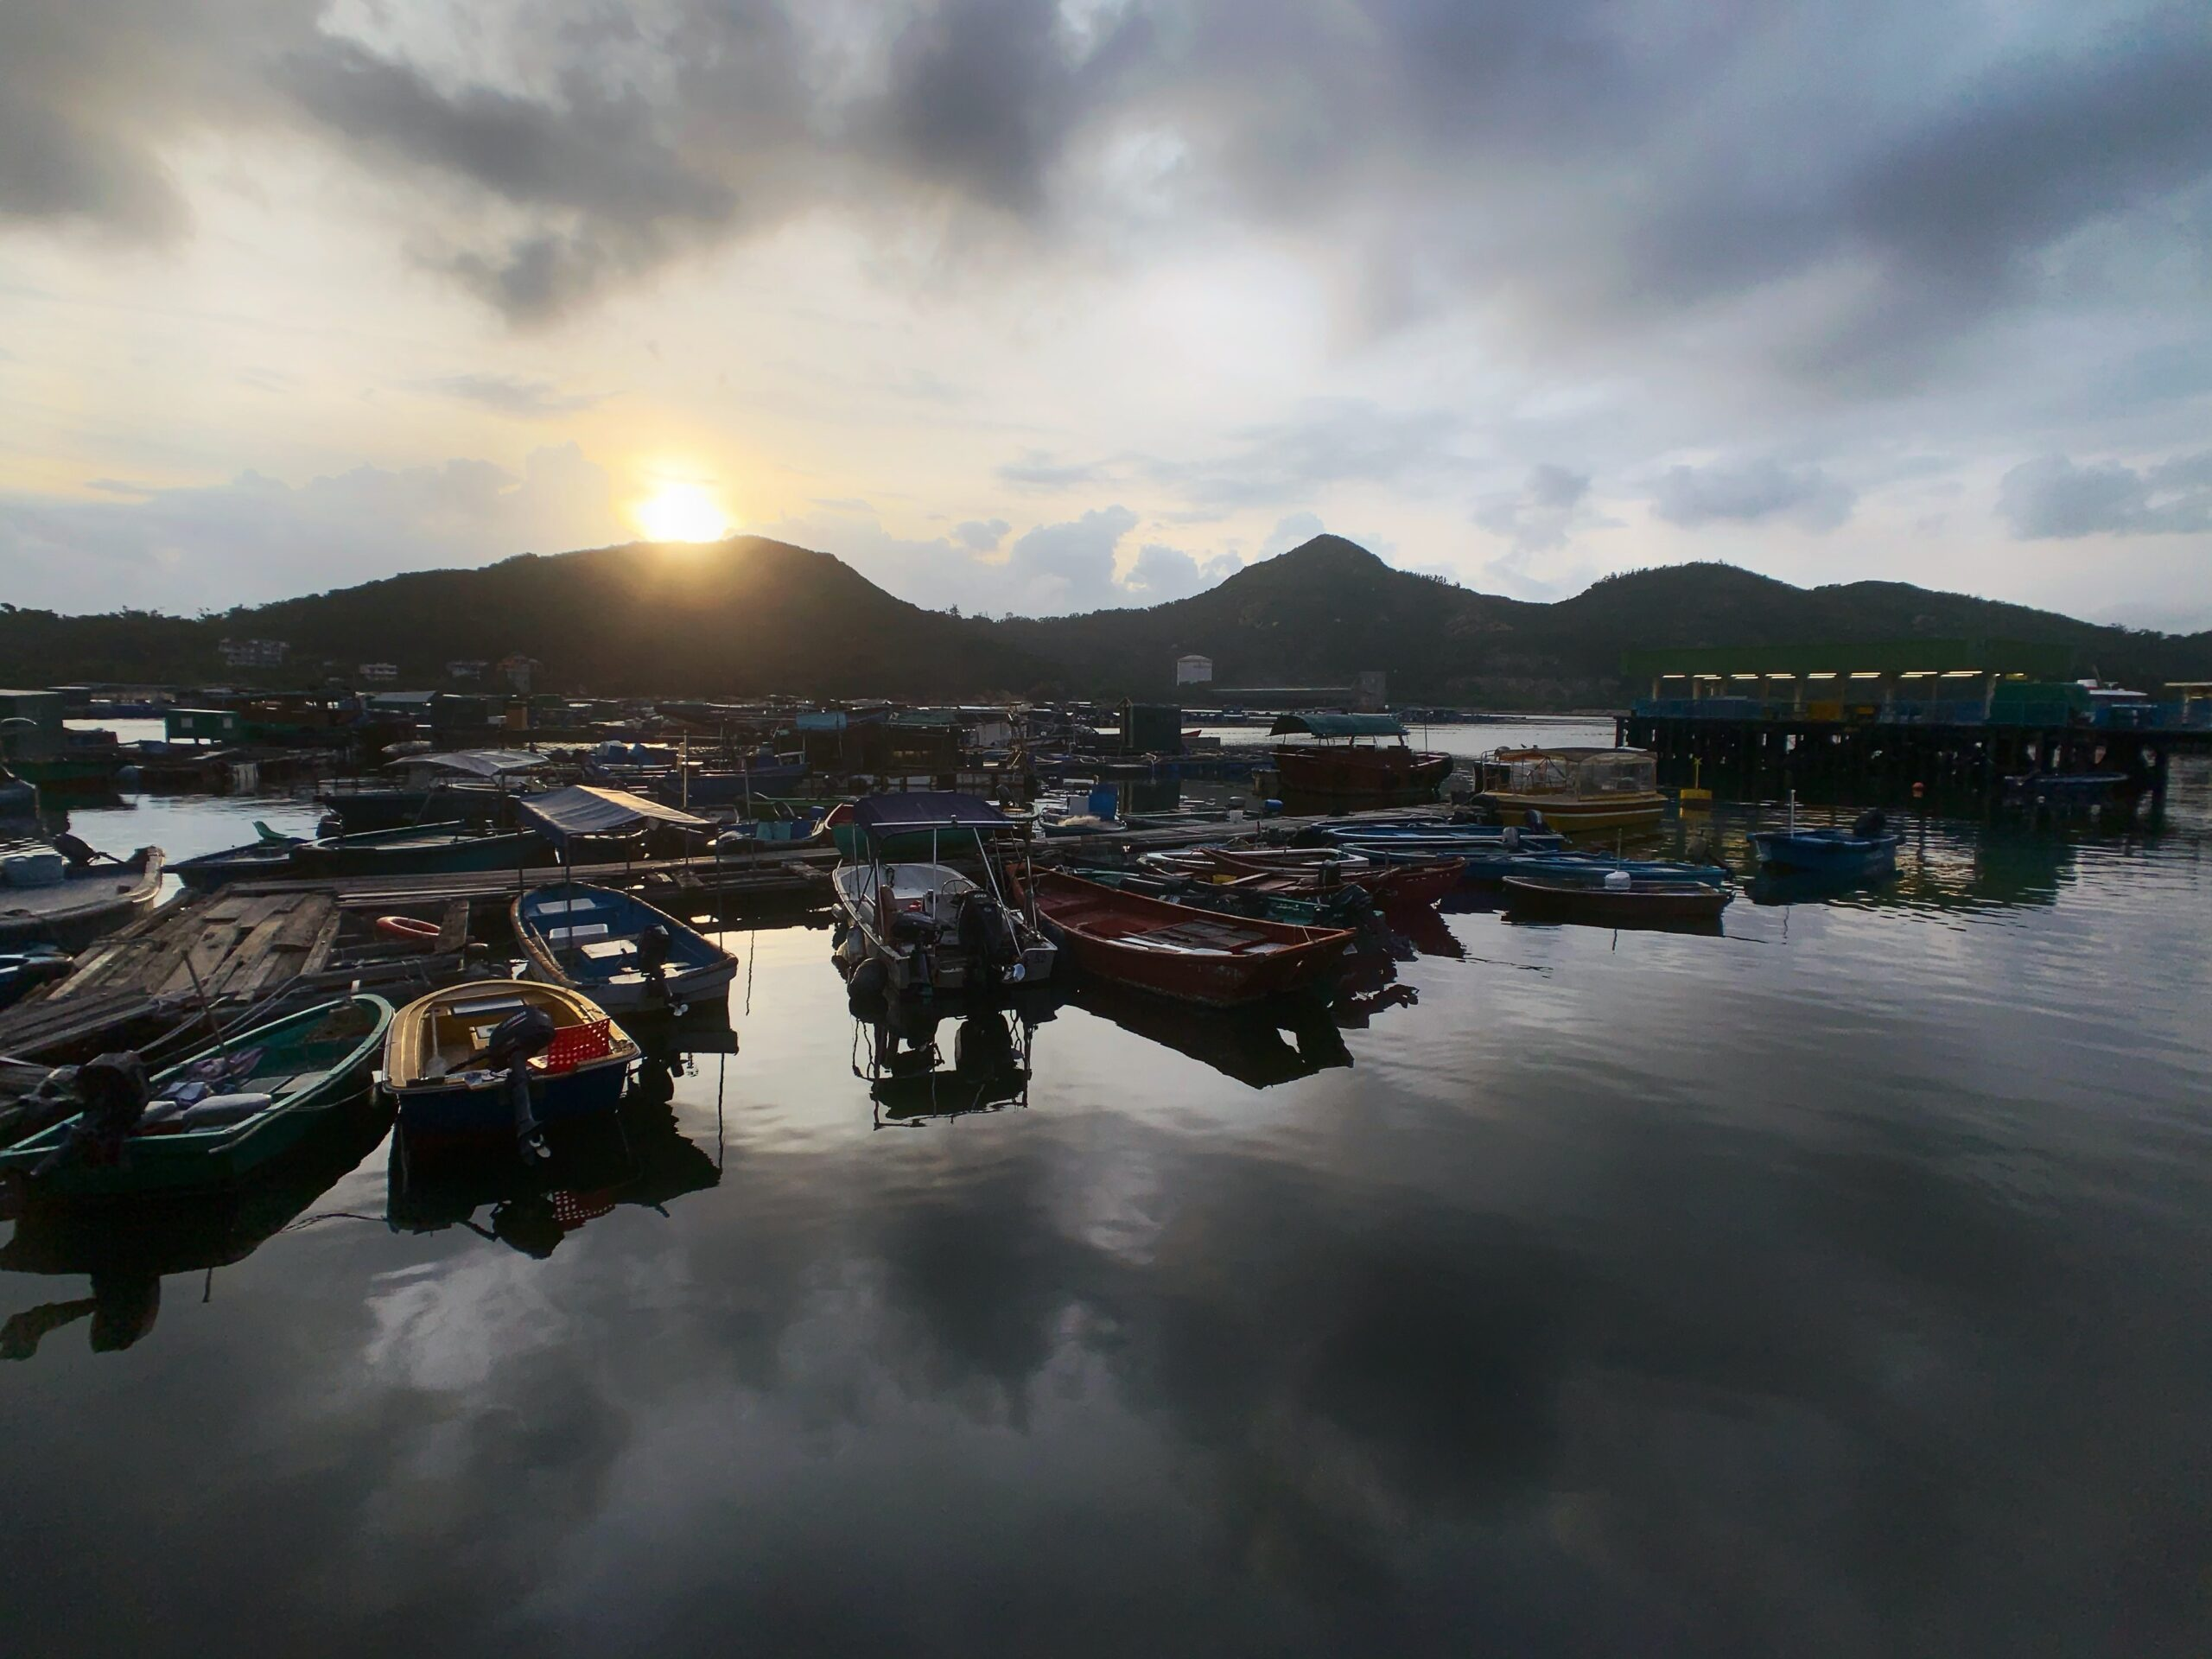 sunrise view over boats in Lamma Island Hong Kong